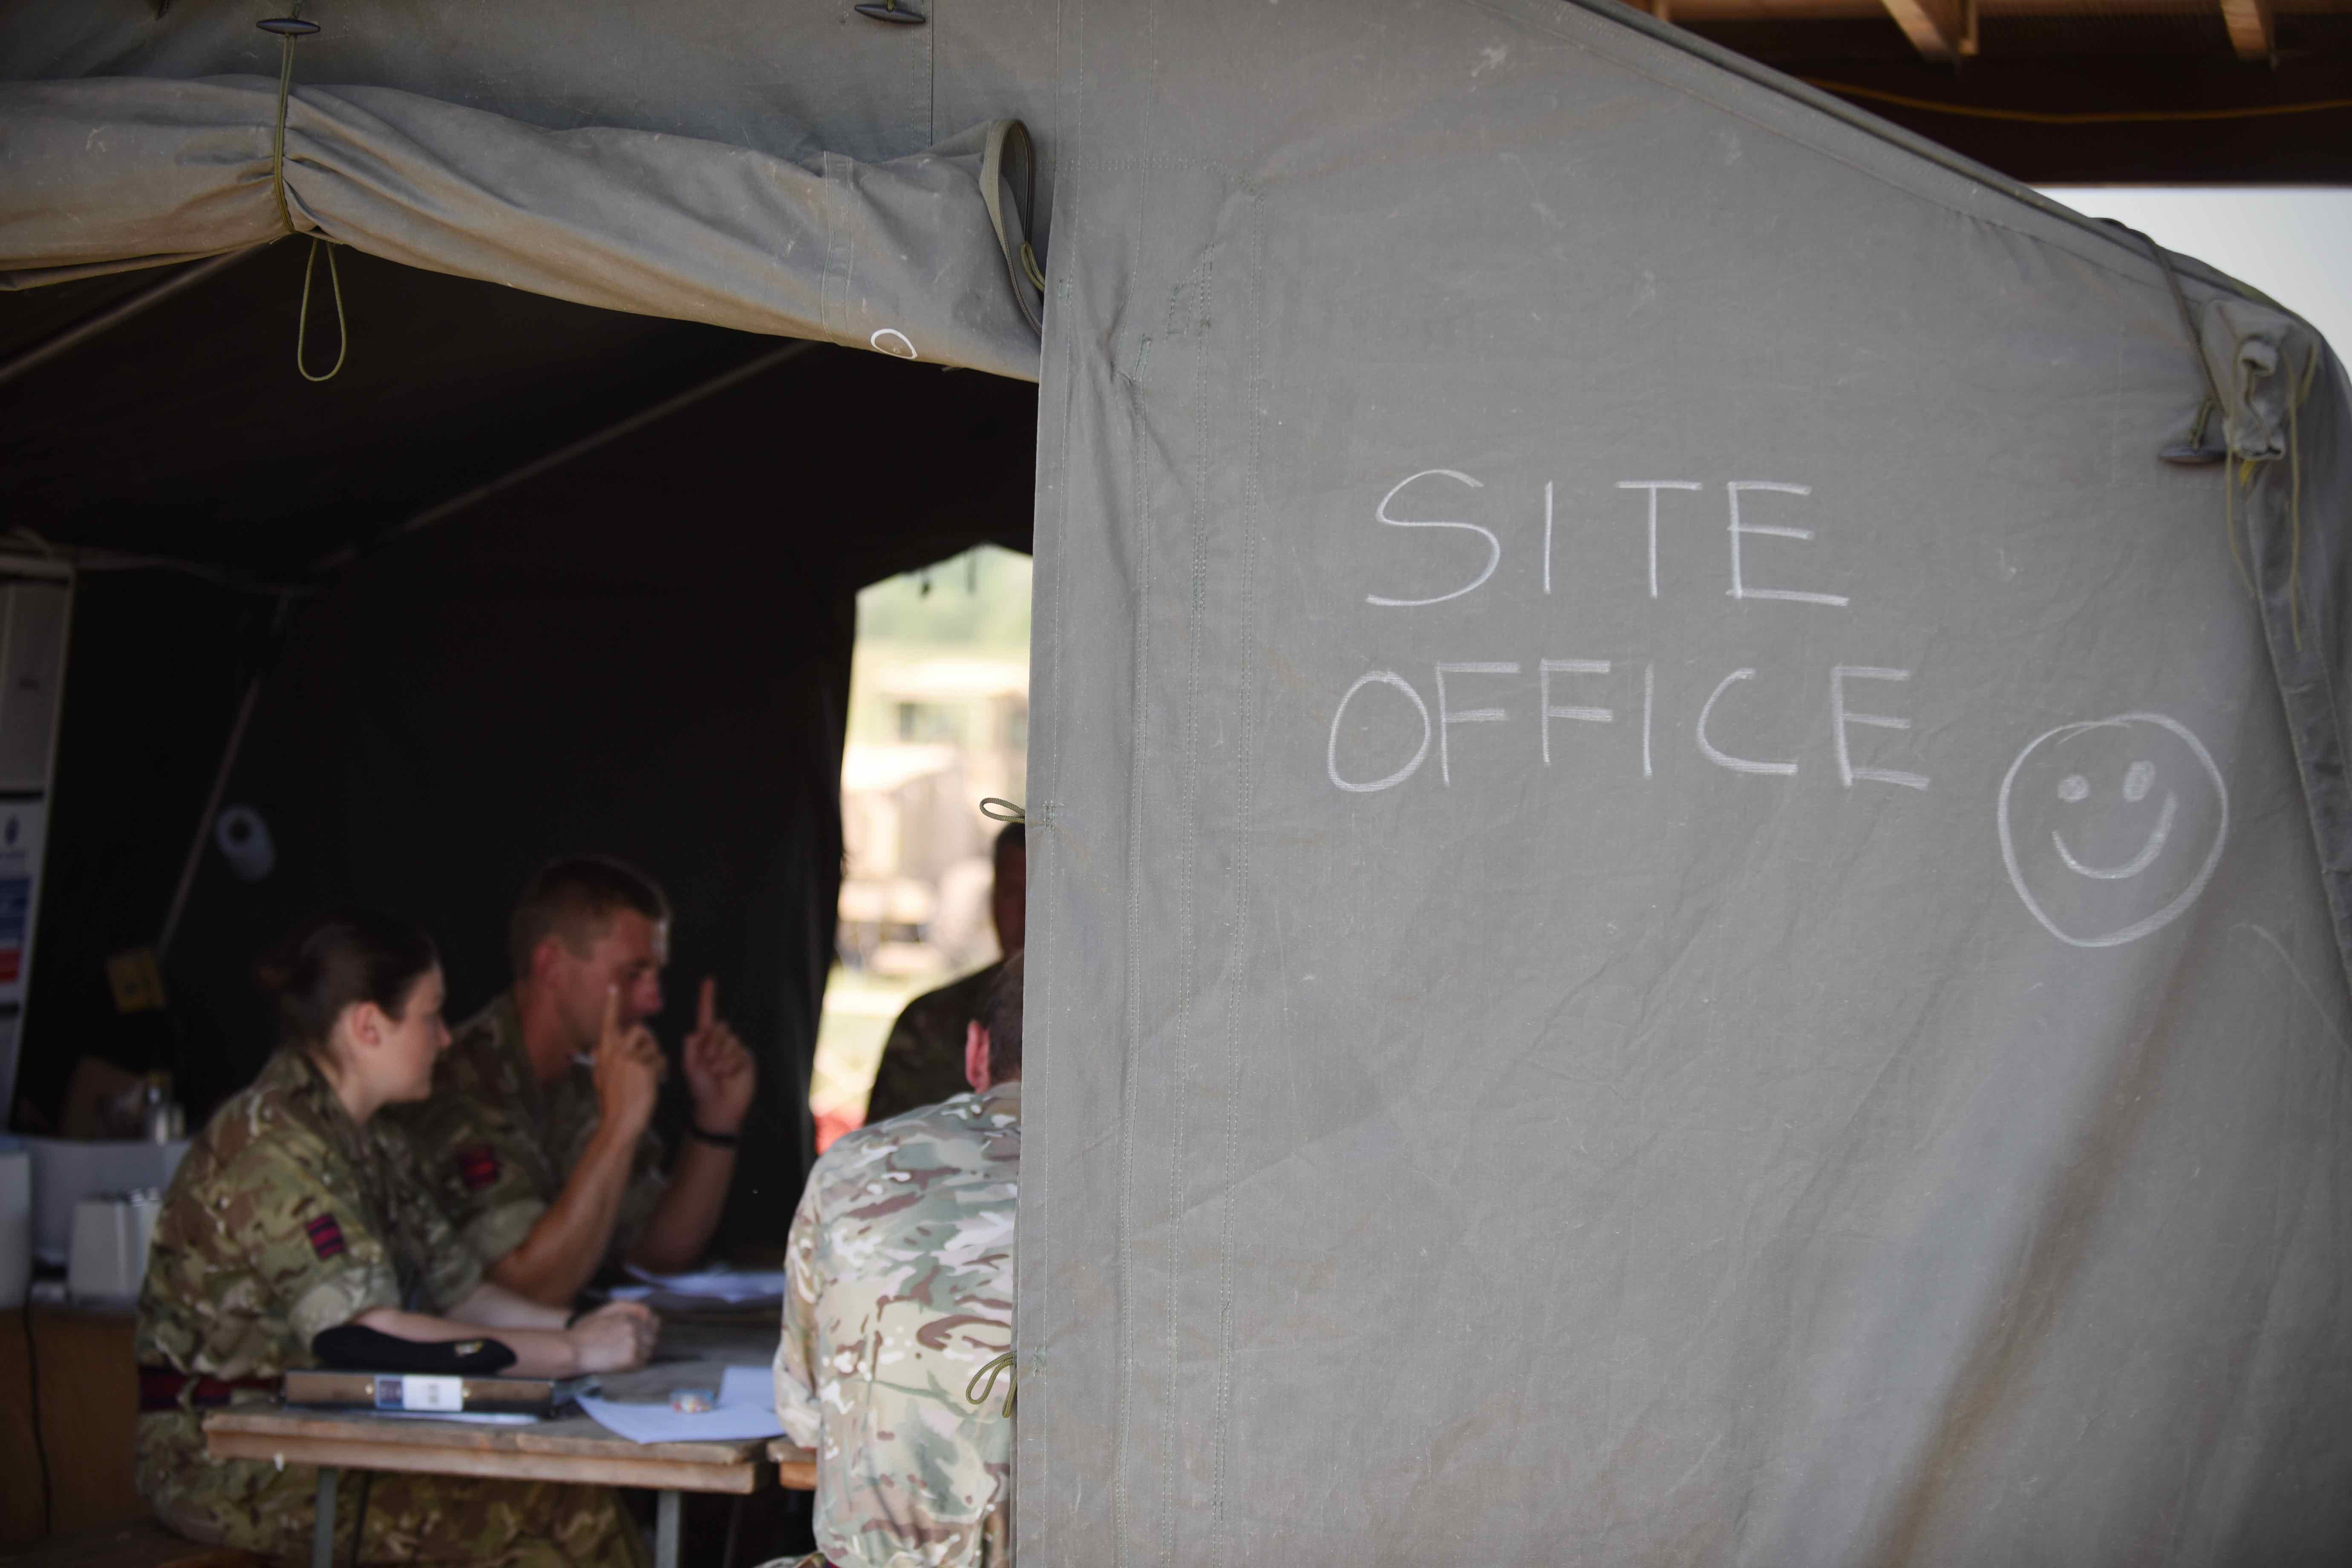 Engineers discuss construction plans inside a tent. While the soldiers encountered interoperability issues from language barriers to using the metric system, they quickly adapted to varying procedures and learned to communicate, even through a form of sign language. (Jen Judson/Staff)